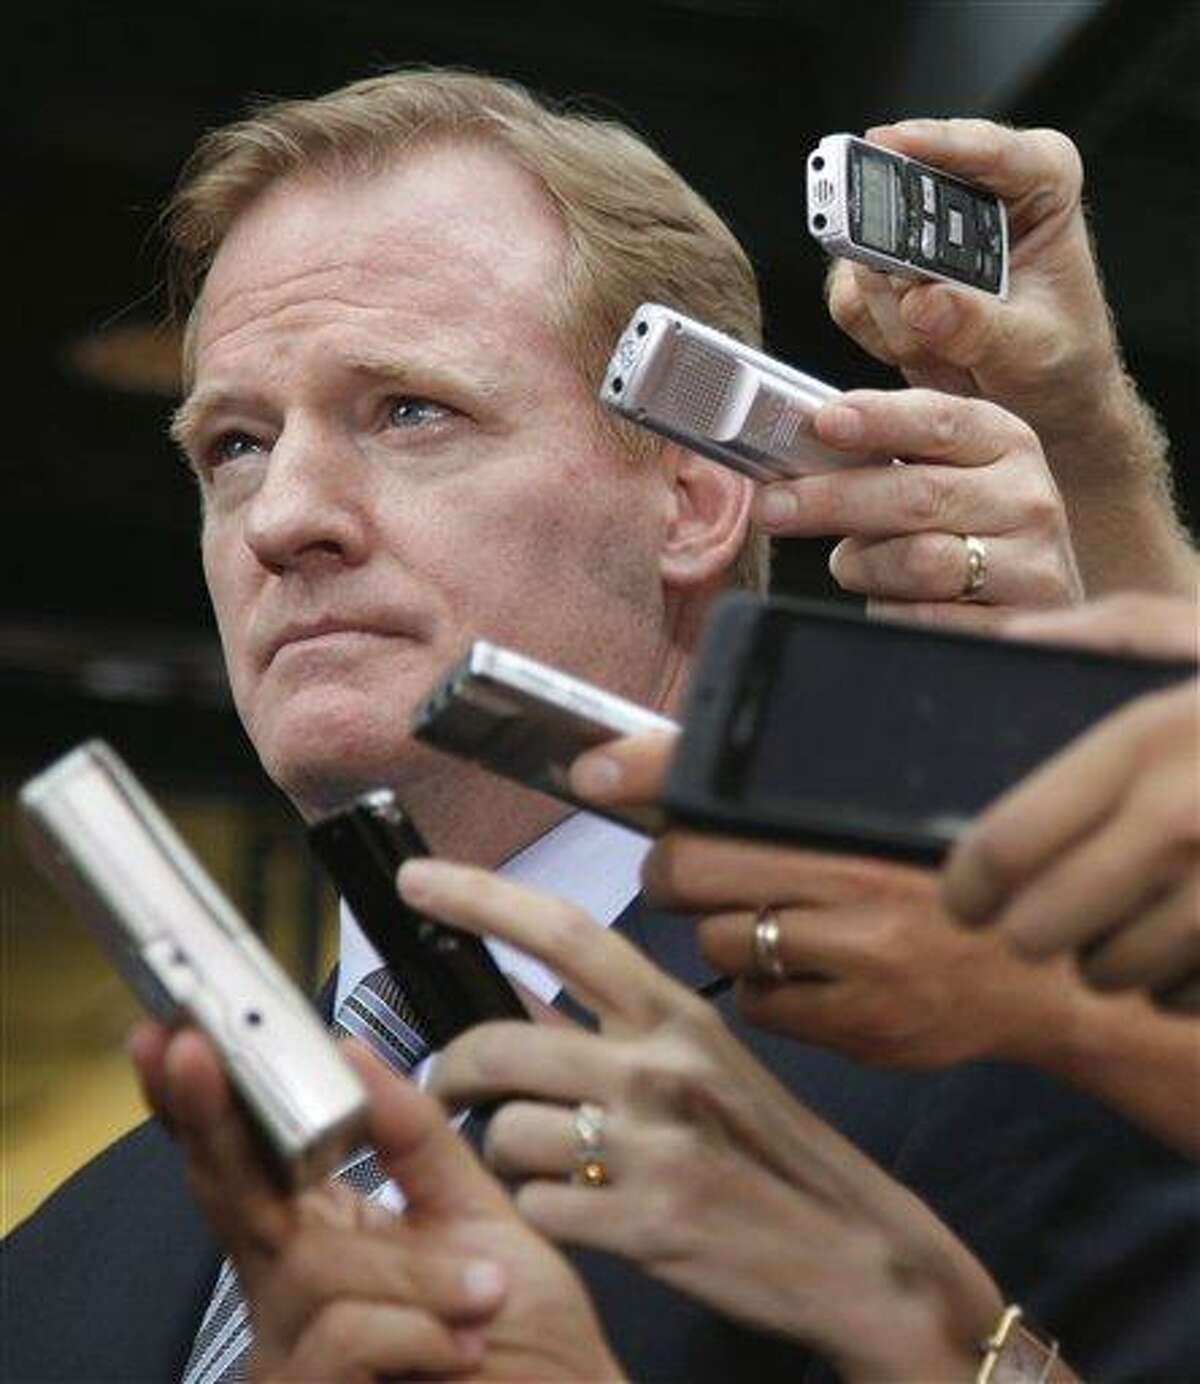 NFL football Commissioner Roger Goodell participates in a news conference at the NFL Players Association in Washington, Monday, July 25, 2011, after the NFL Players Association executive board and 32 team reps voted unanimously Monday to approve the terms of a deal with owners to the end the 4½-month lockout. (AP Photo/Carolyn Kaster)